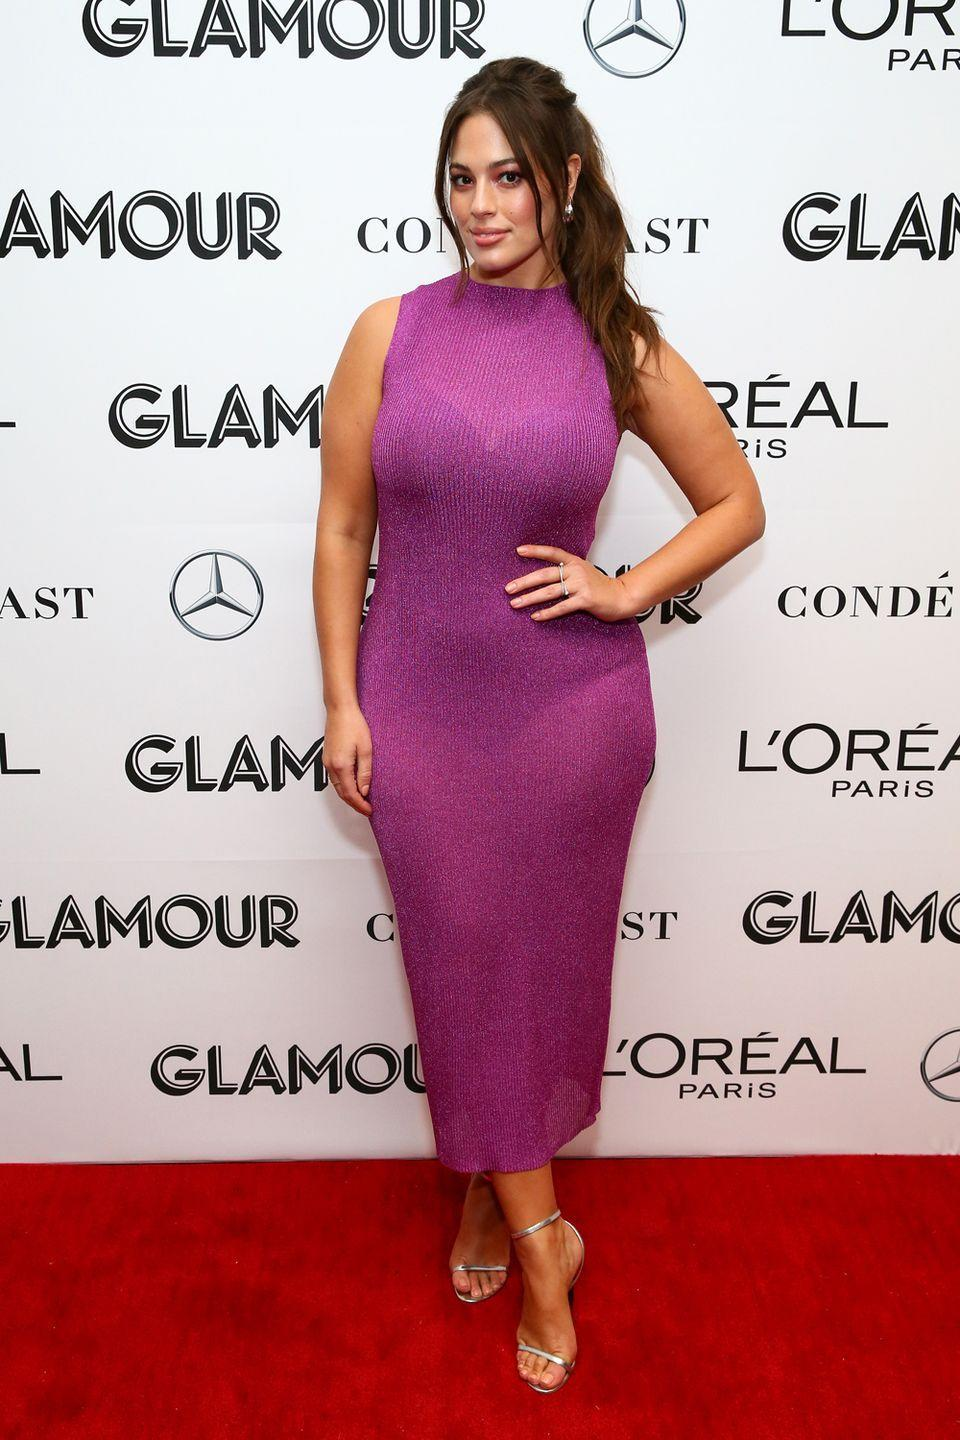 <p>Attending Glamour's Women of the Year Summit: How do you manage to pull of a sexy business look? Well Ashley just nailed it with this very sheer, and very purple shift dress. Maybe we need to put our bra and pants on display more often...</p>